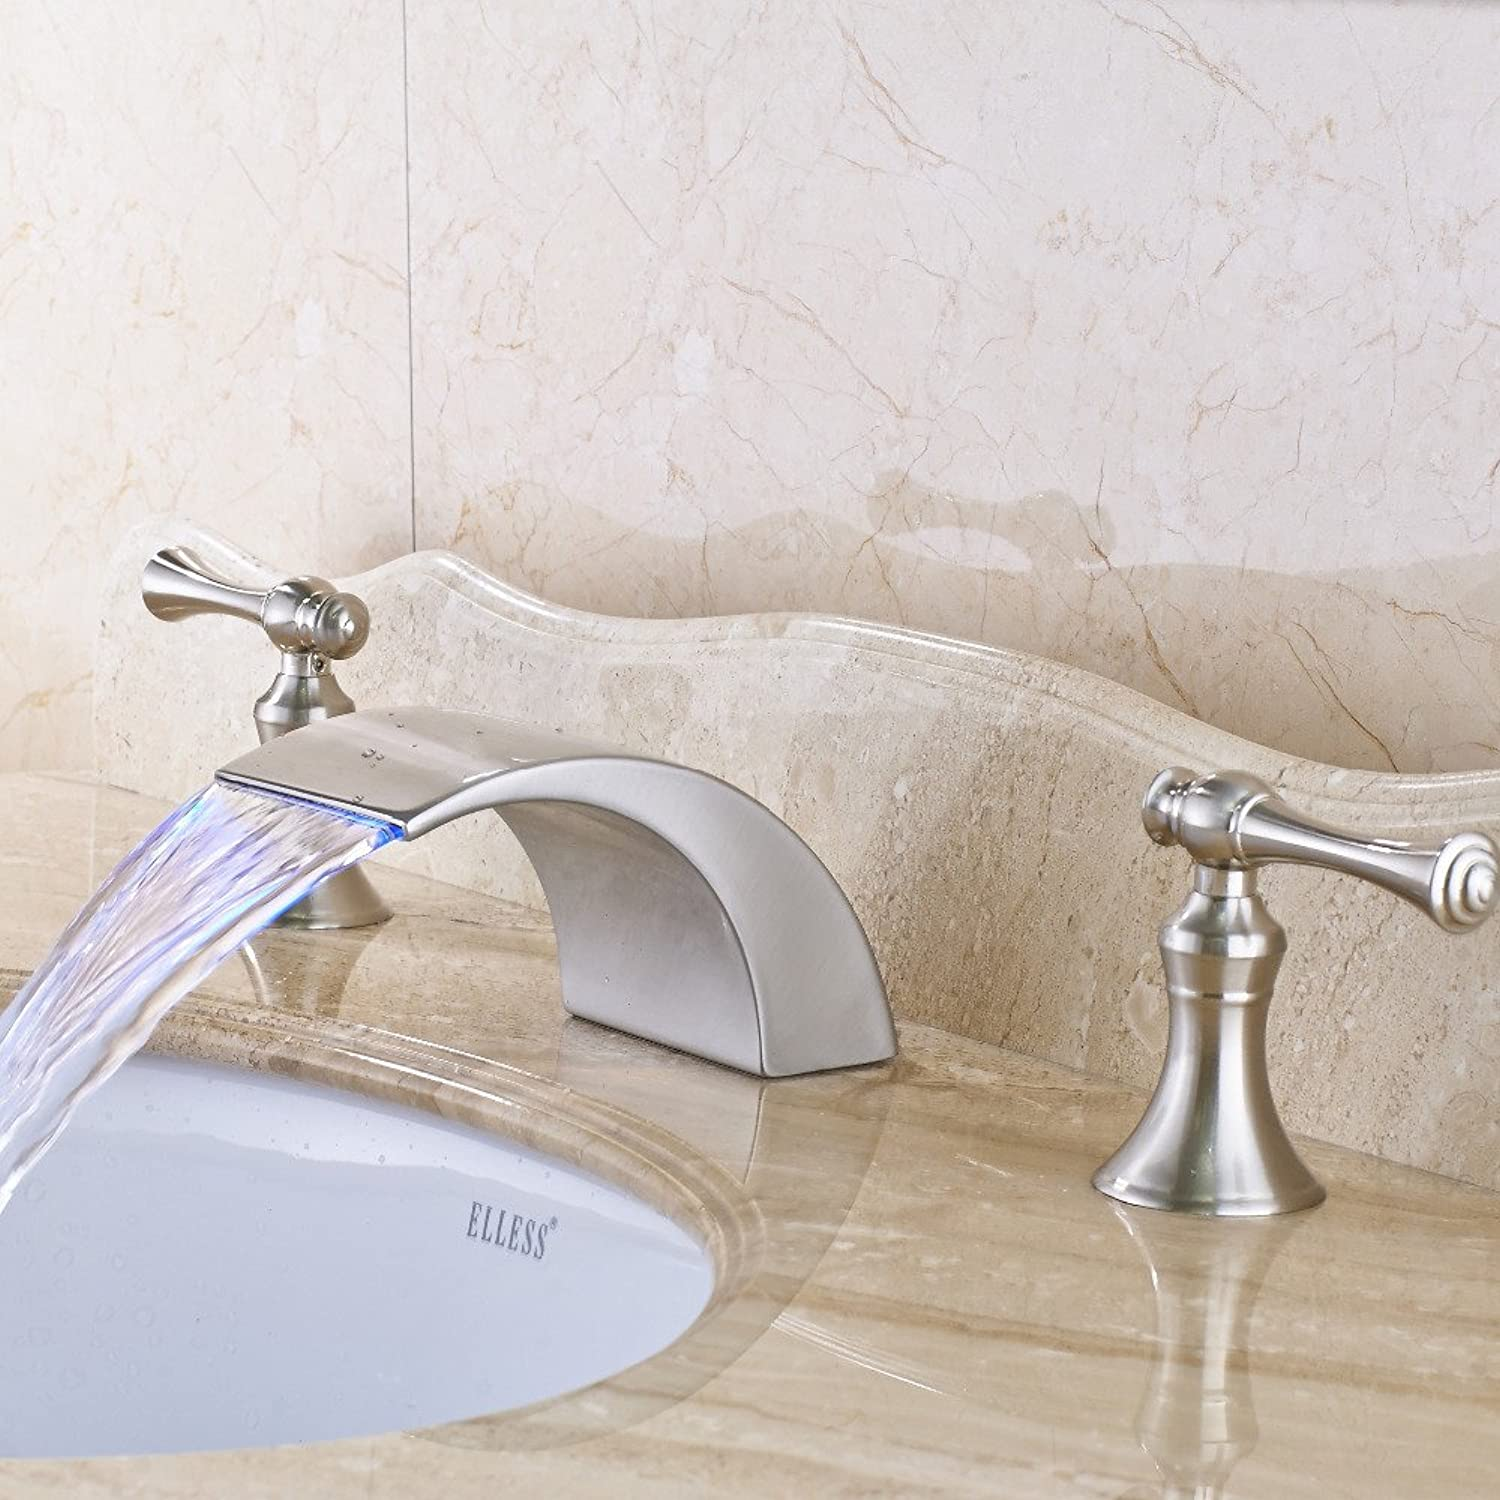 Maifeini Nickel Plated Brushed-Wide Dual Handles Of The Holes In The Bathroom Basin Series Mixer, Clearing